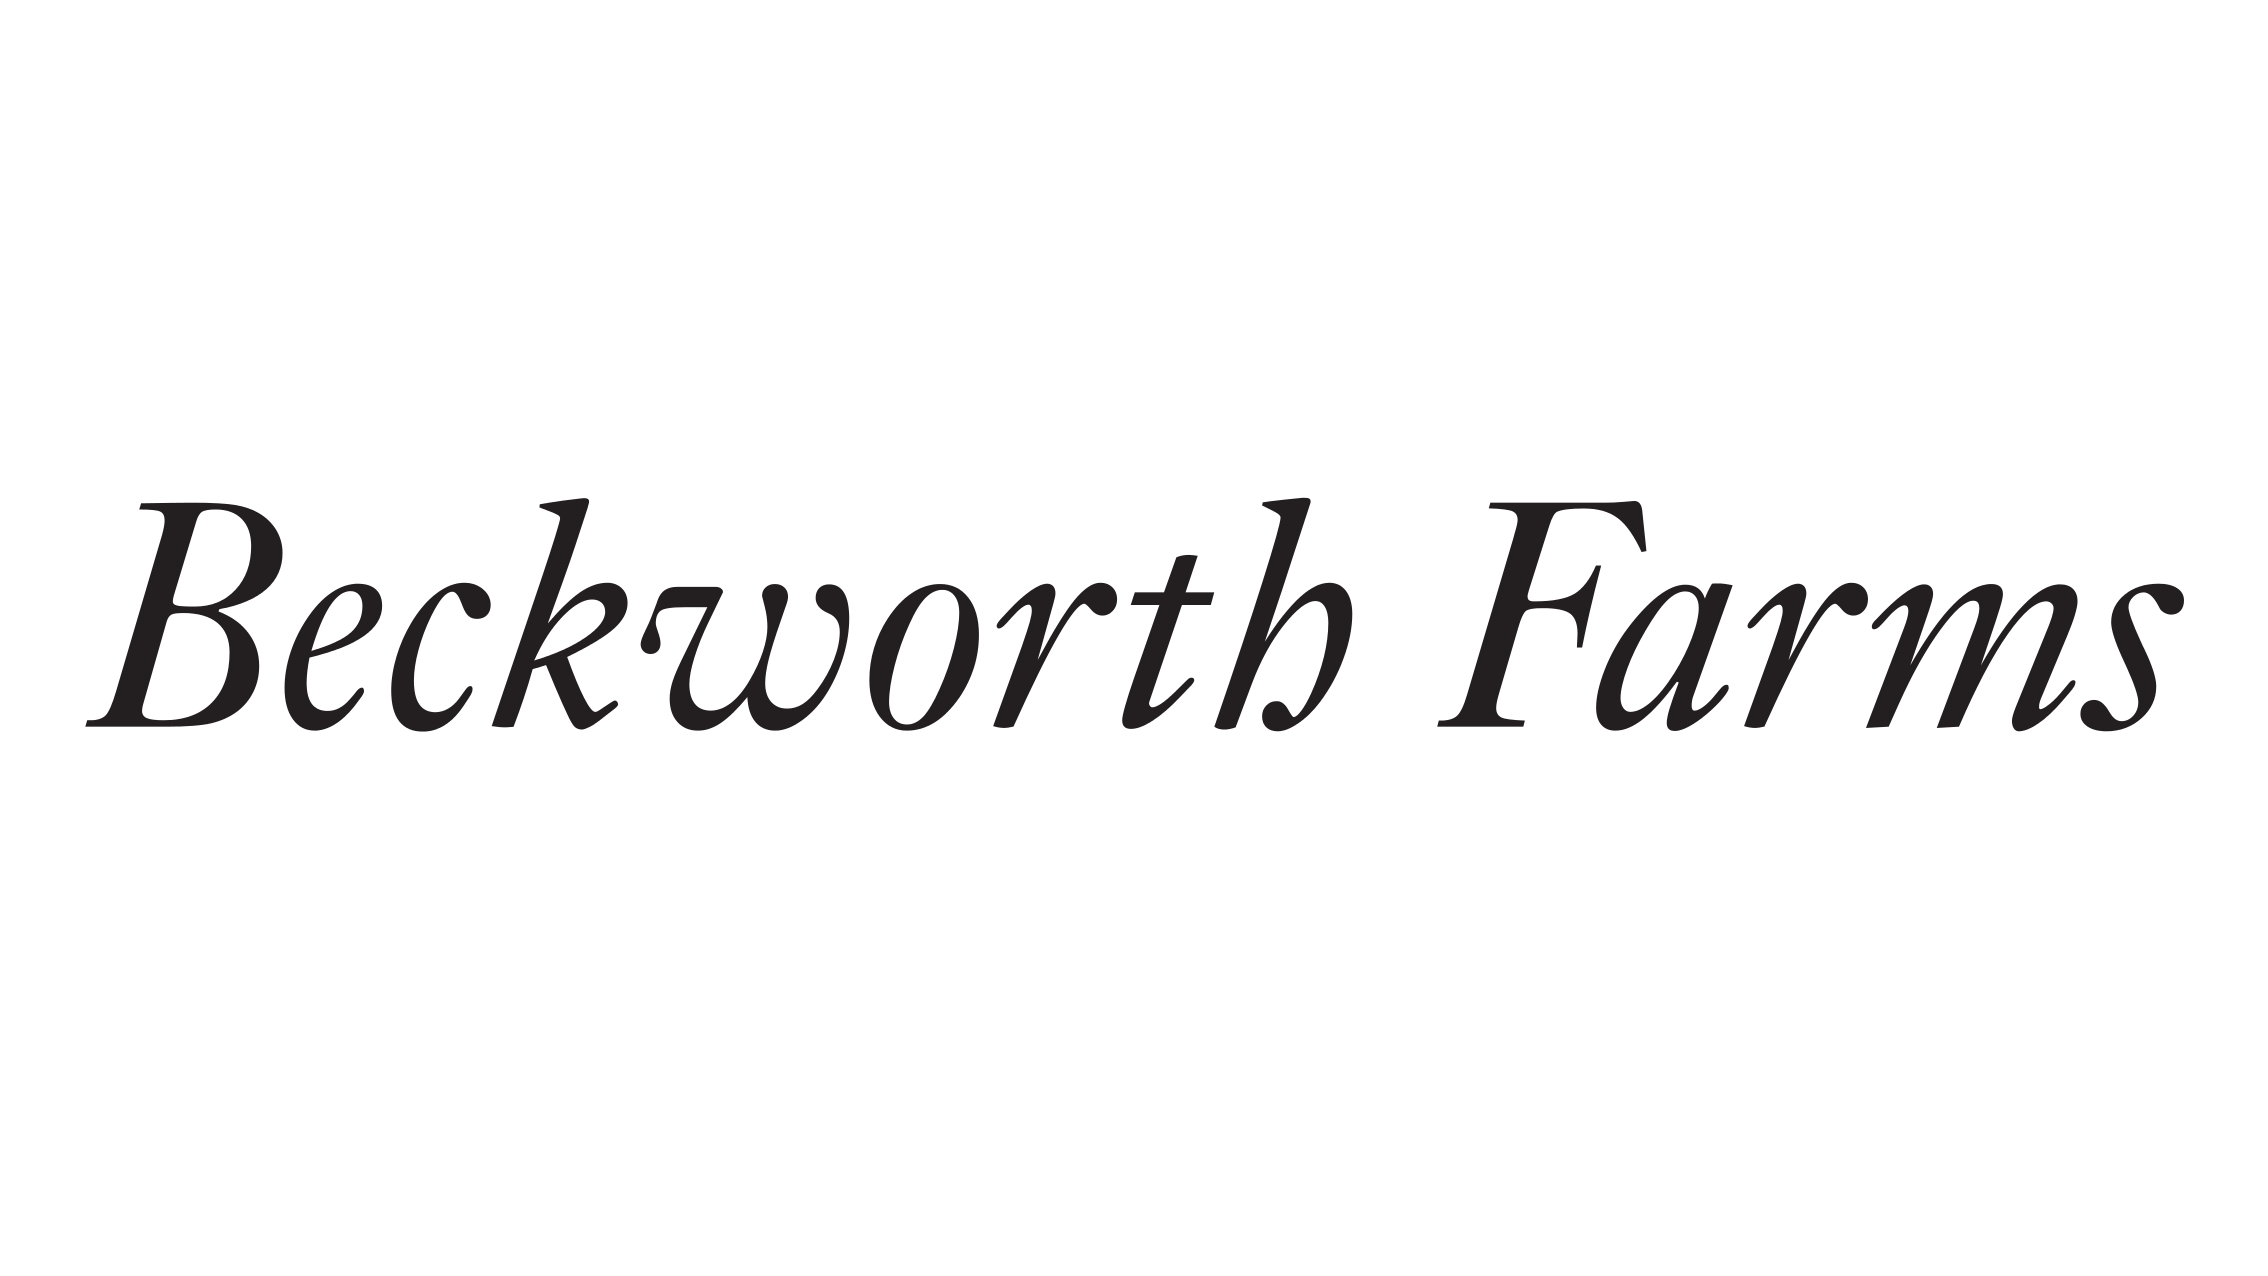 Beckworth Farms (Screen)